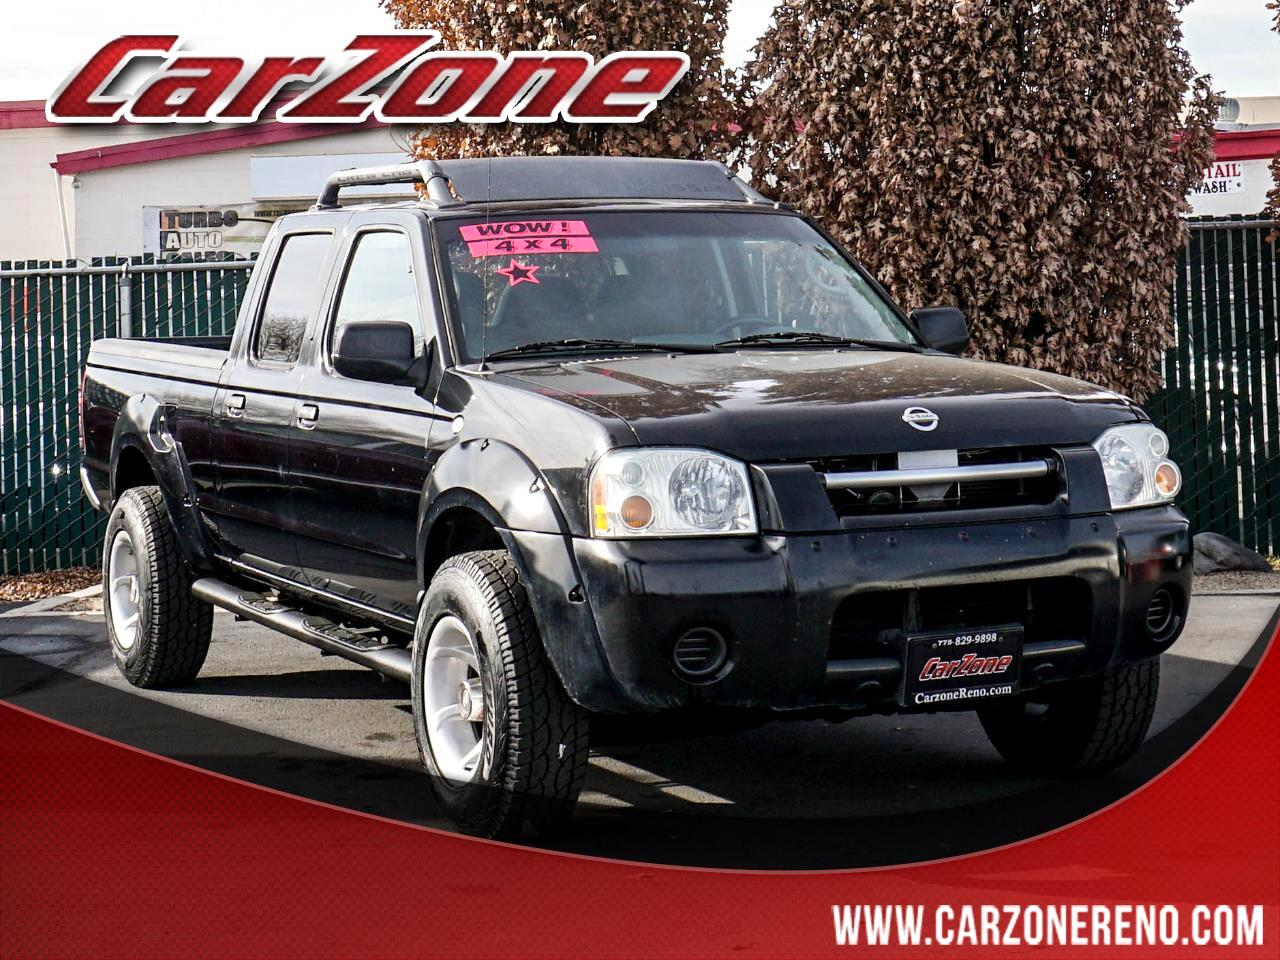 Nissan Frontier 4WD XE Crew Cab V6 Auto LB 2004